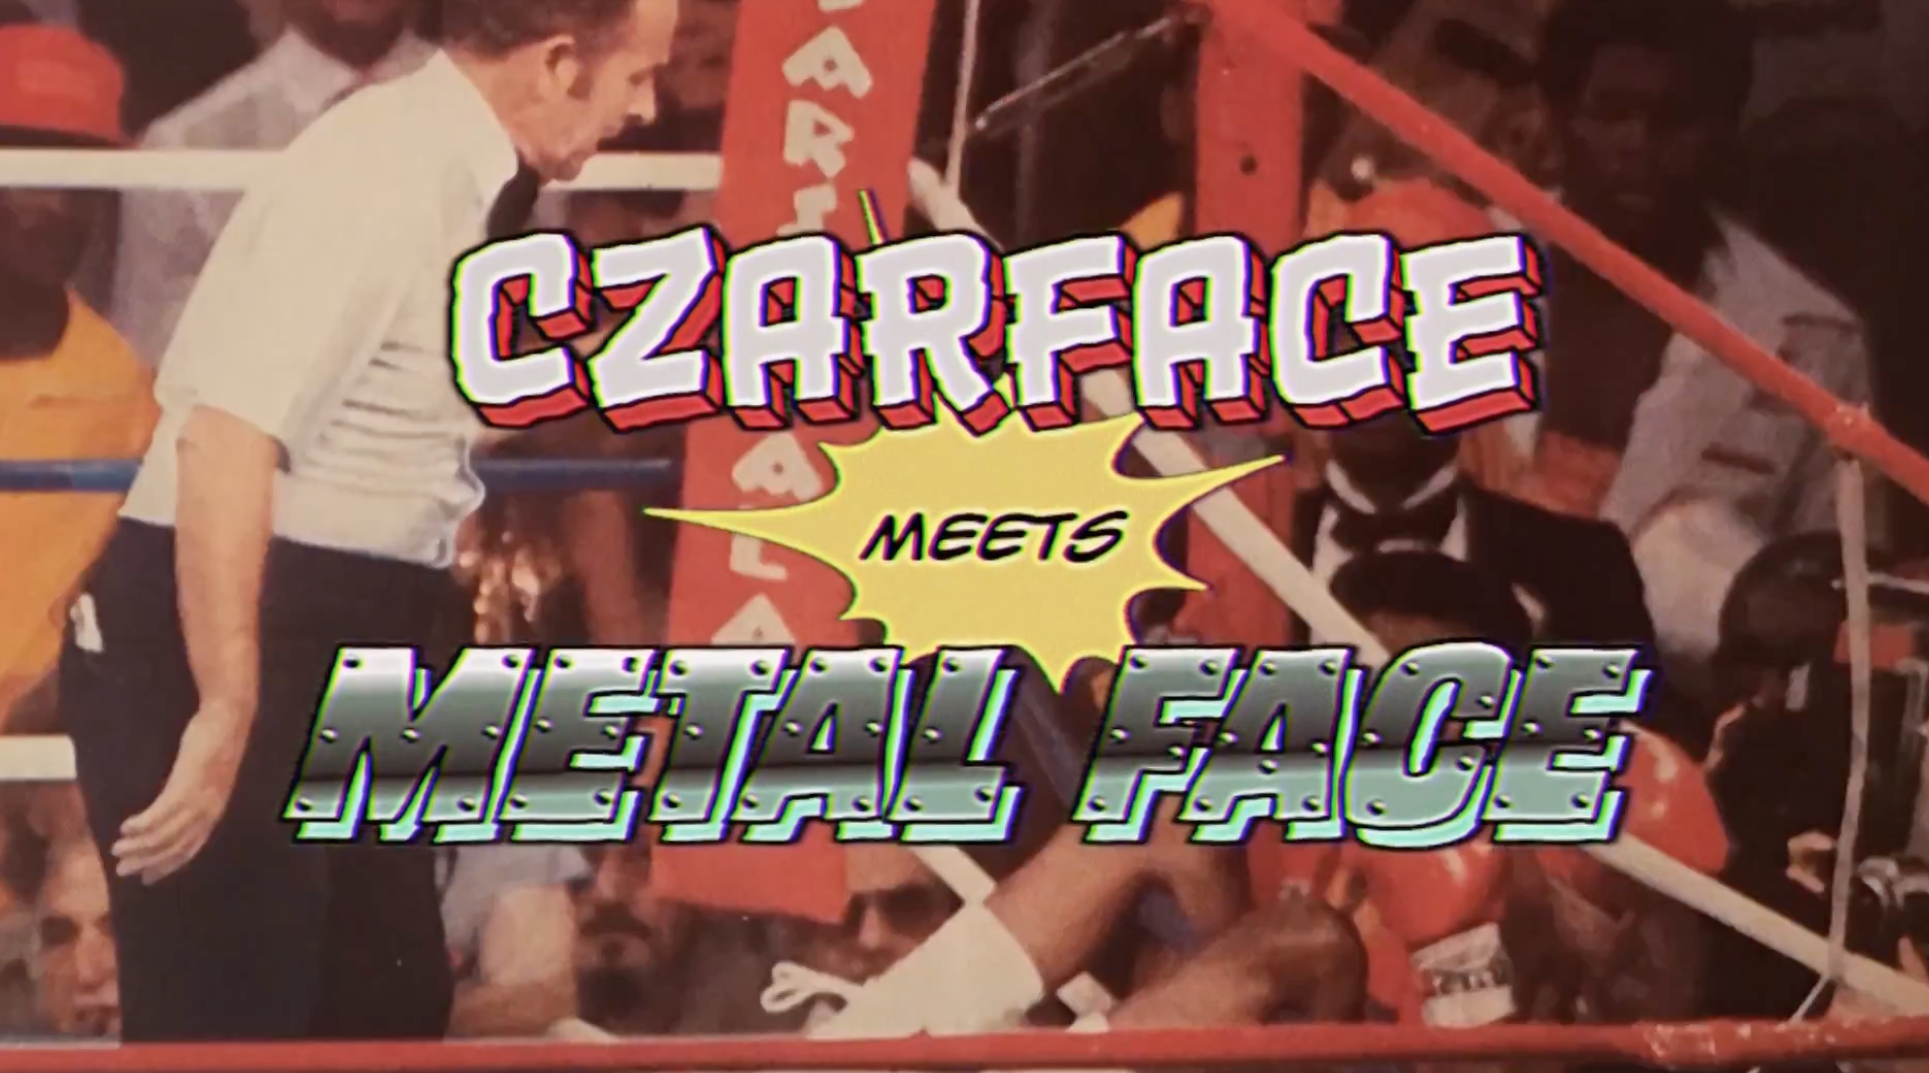 Czarface & MF DOOM Return With New Video From 'Czarface Meets Metal Face'!